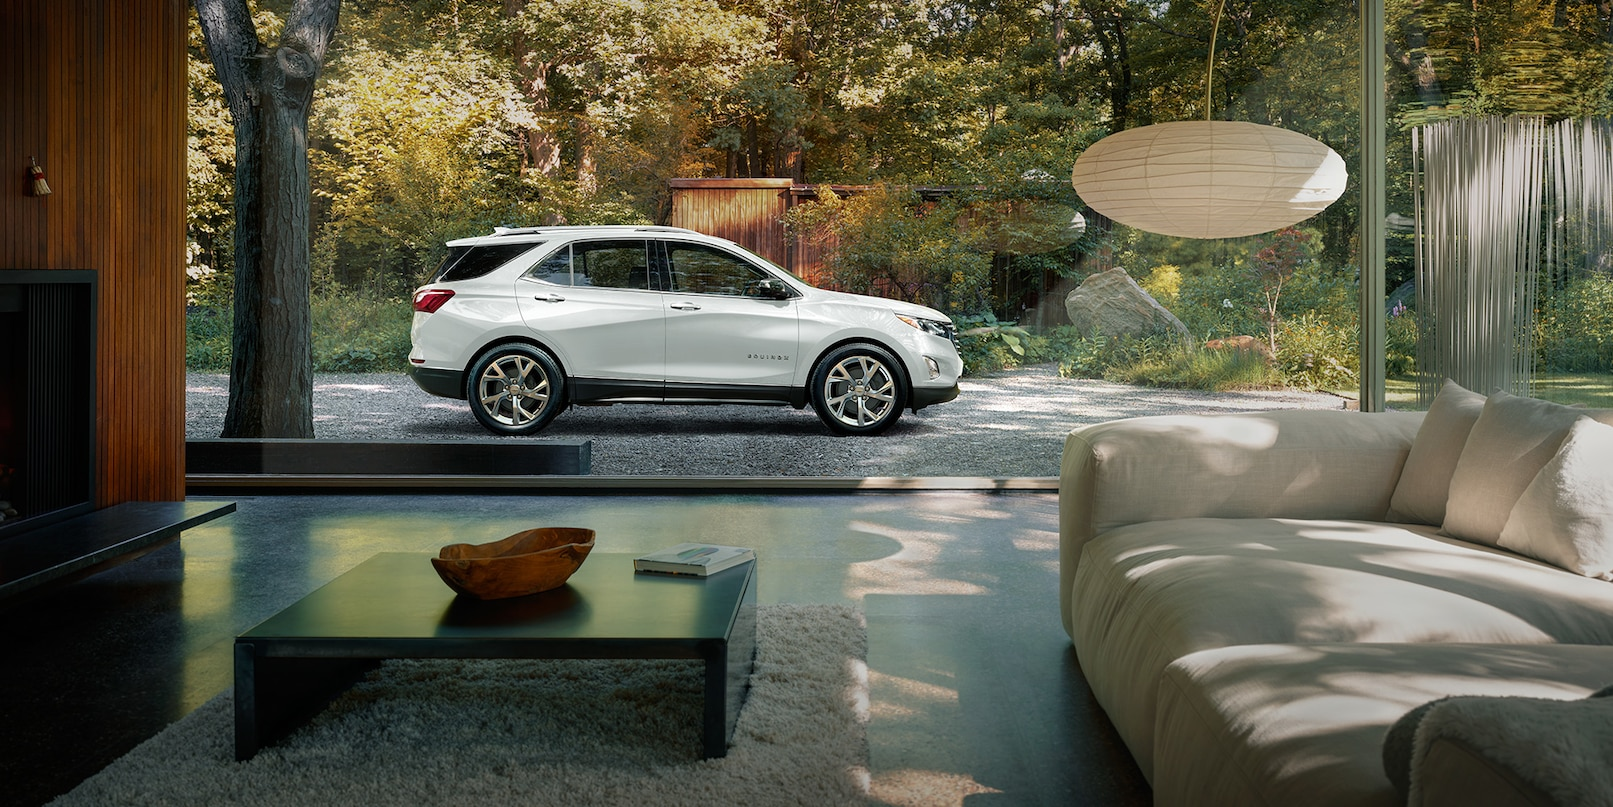 2019 Chevrolet Equinox Leasing in Jackson, MN